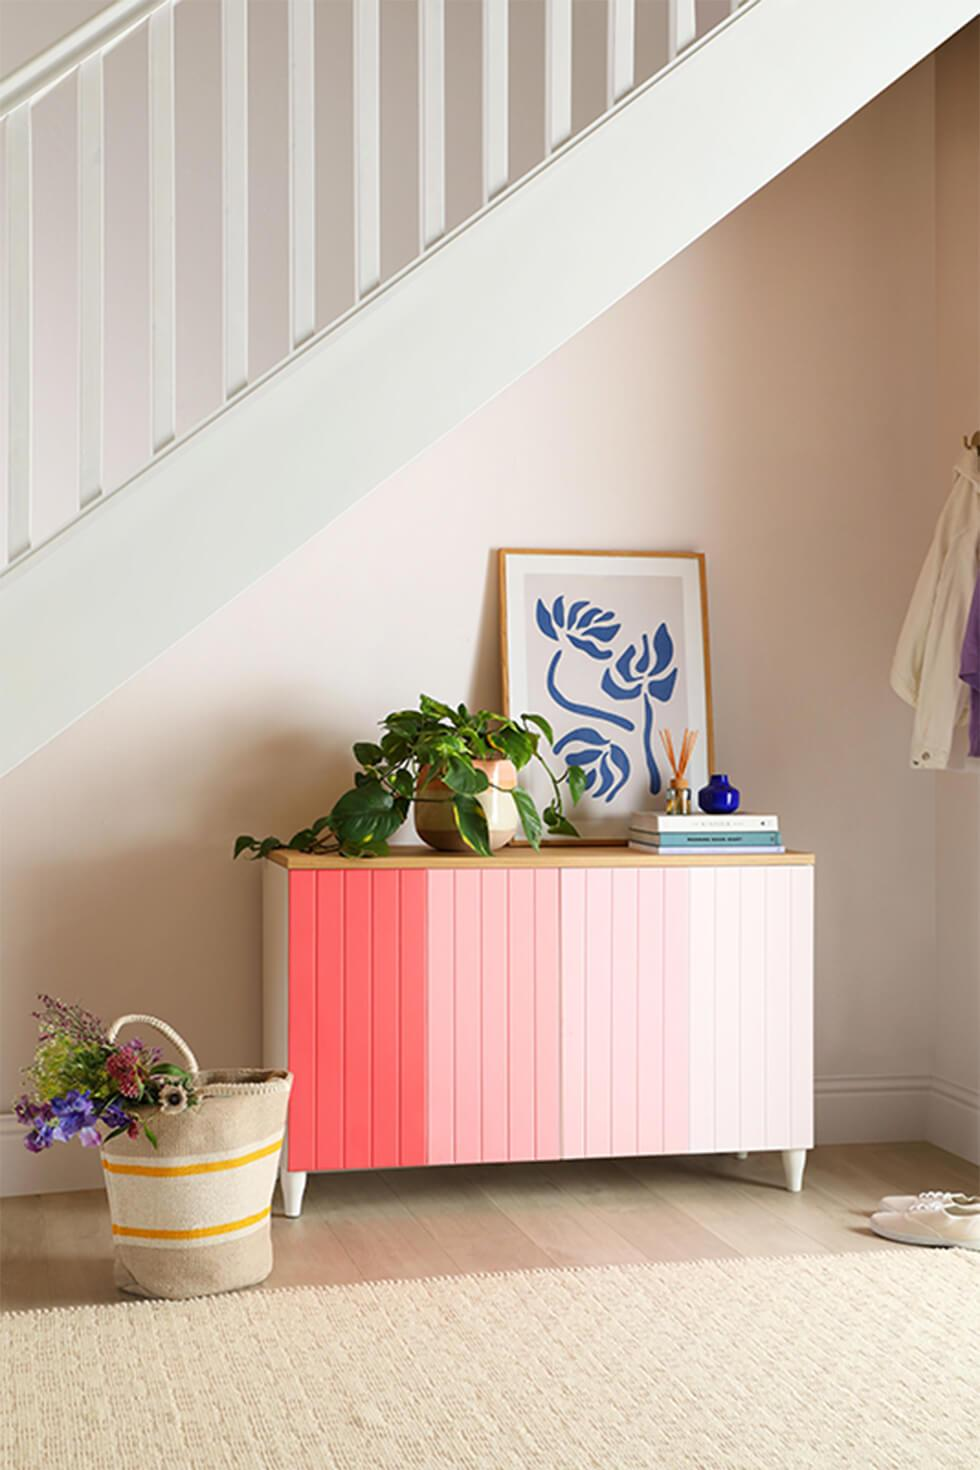 Statement ombre sideboard in shades of pink